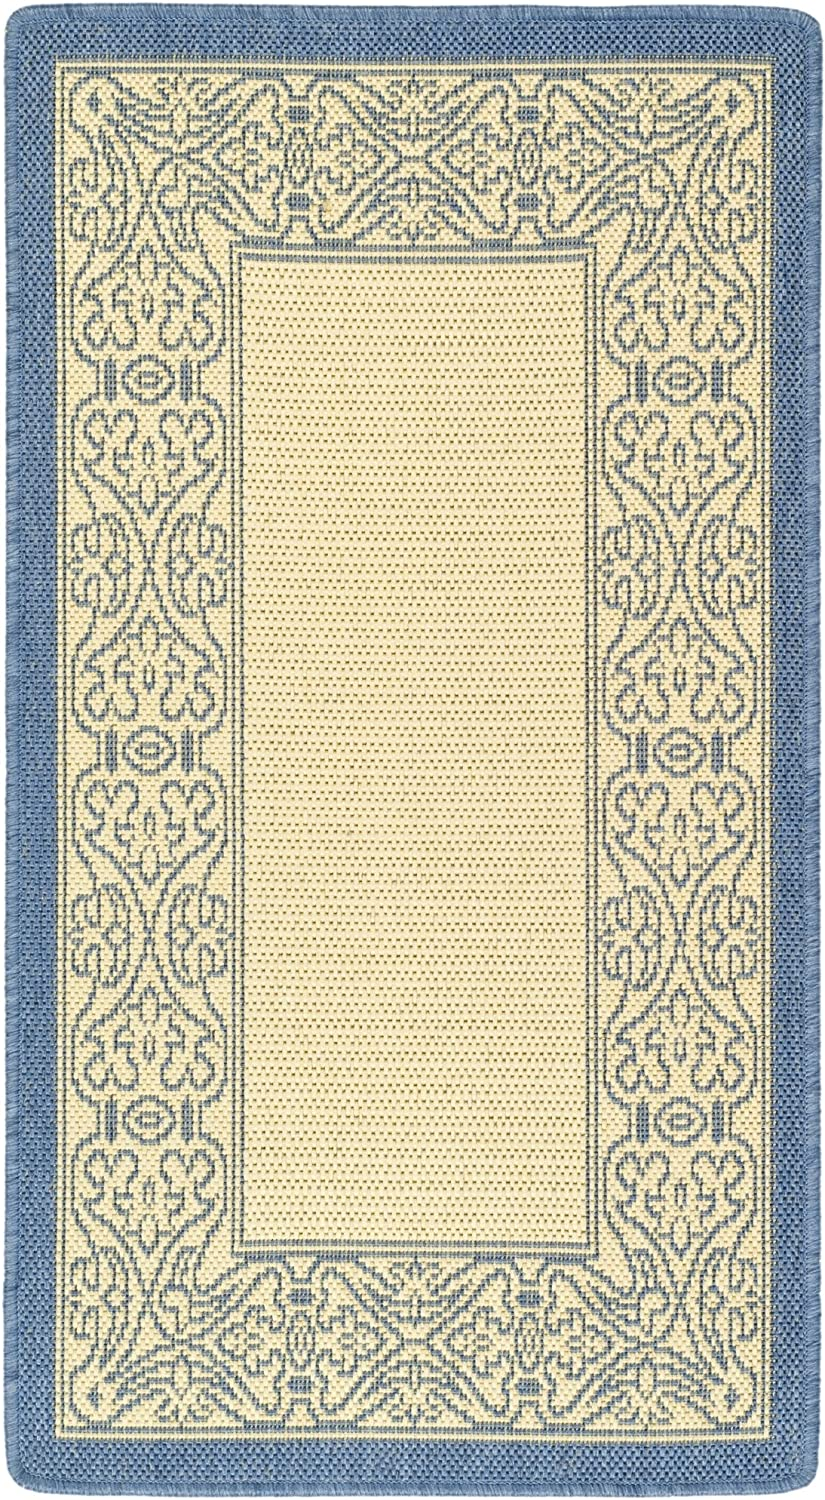 Safavieh Courtyard Collection CY20993101 Natural and bluee Indoor Outdoor Area Rug, 2 feet by 3 feet 7 inches (2' x 3'7 )